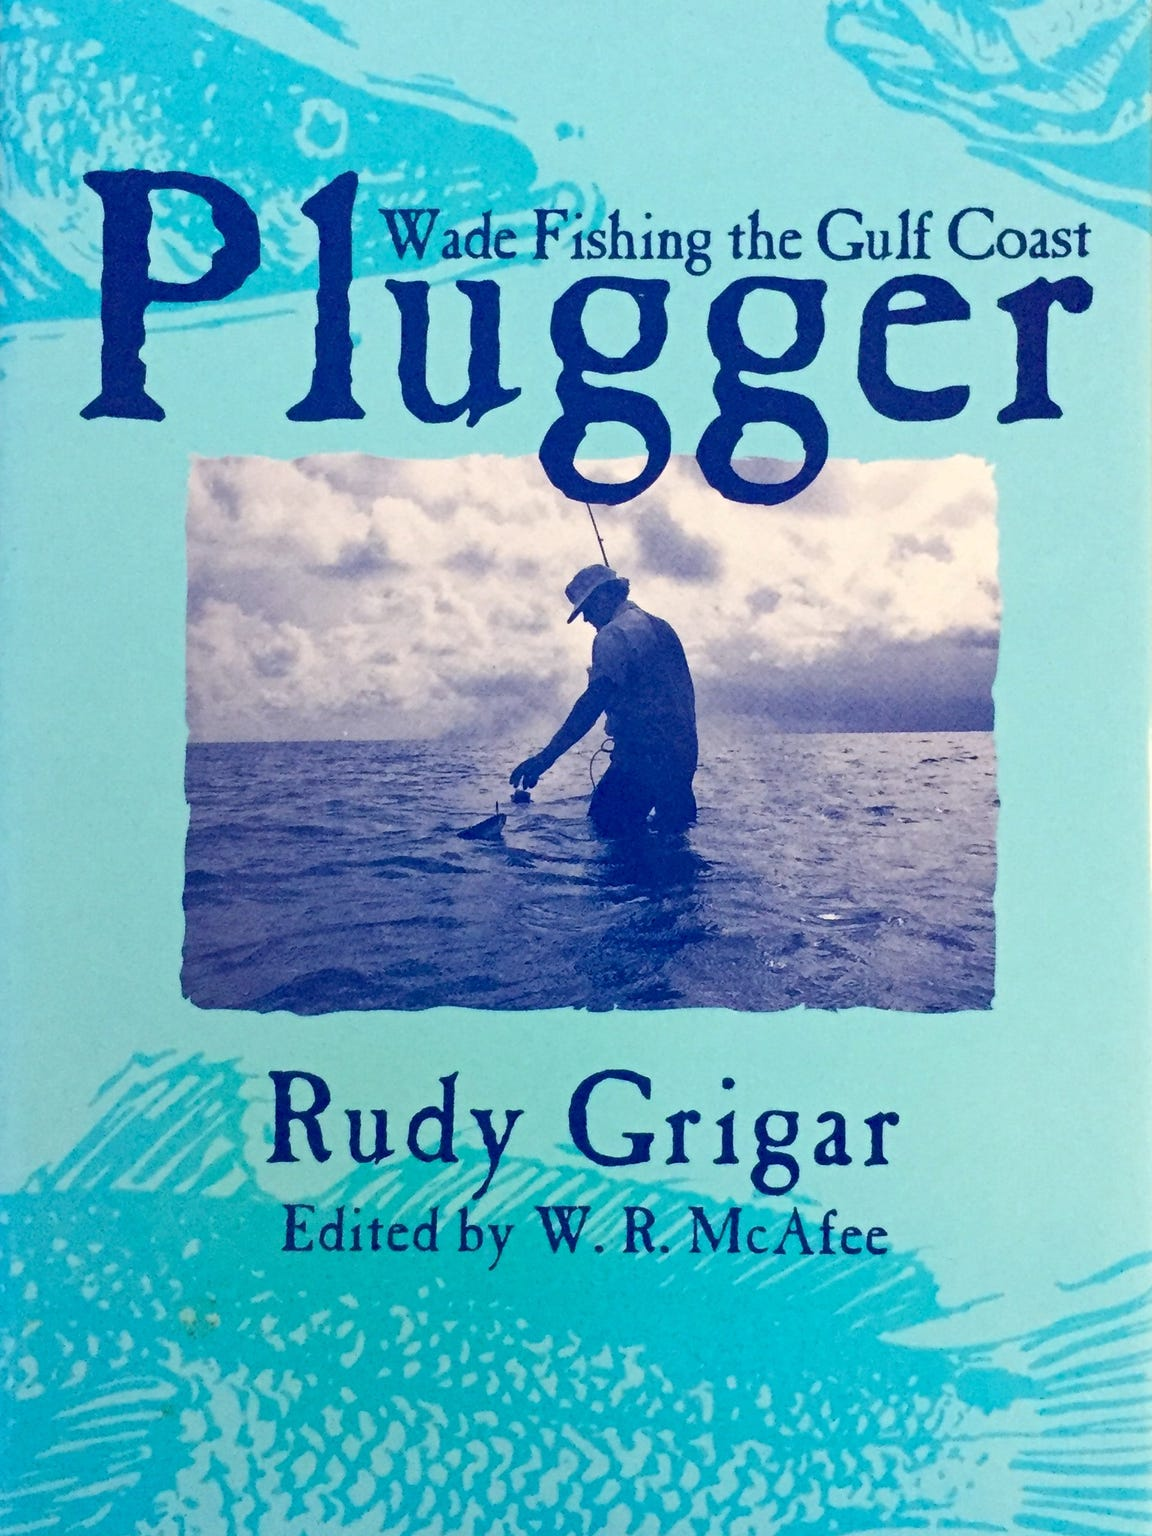 Plugger, Wade Fishing the Gulf Coast by Rudy Grigar